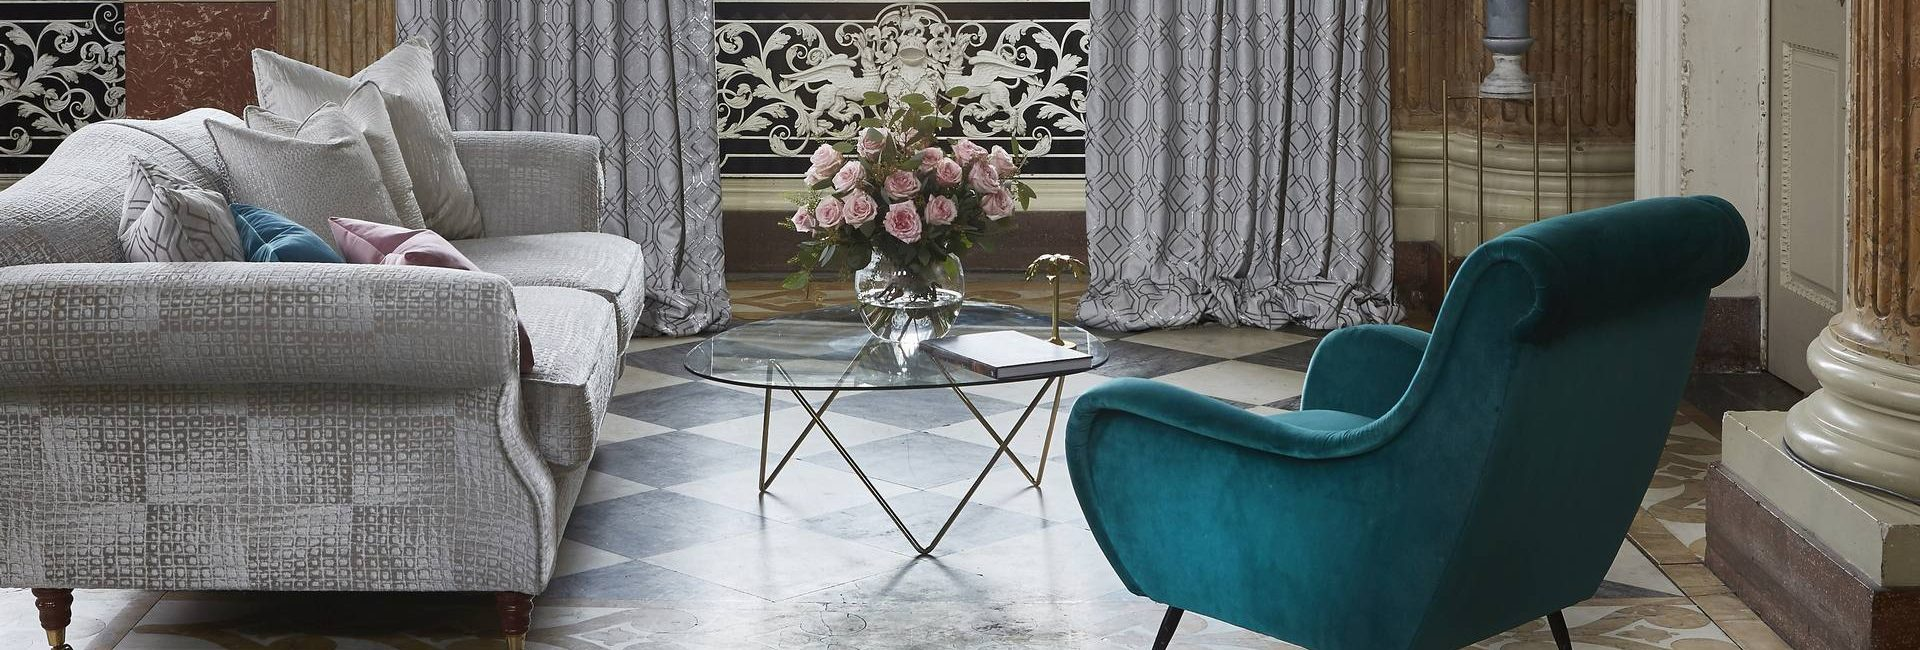 Prestigious Textiles Phoenix collection of fabrics made into curtains and upholstery - available from Fabric Gallery and Interiors in Dunnington, York